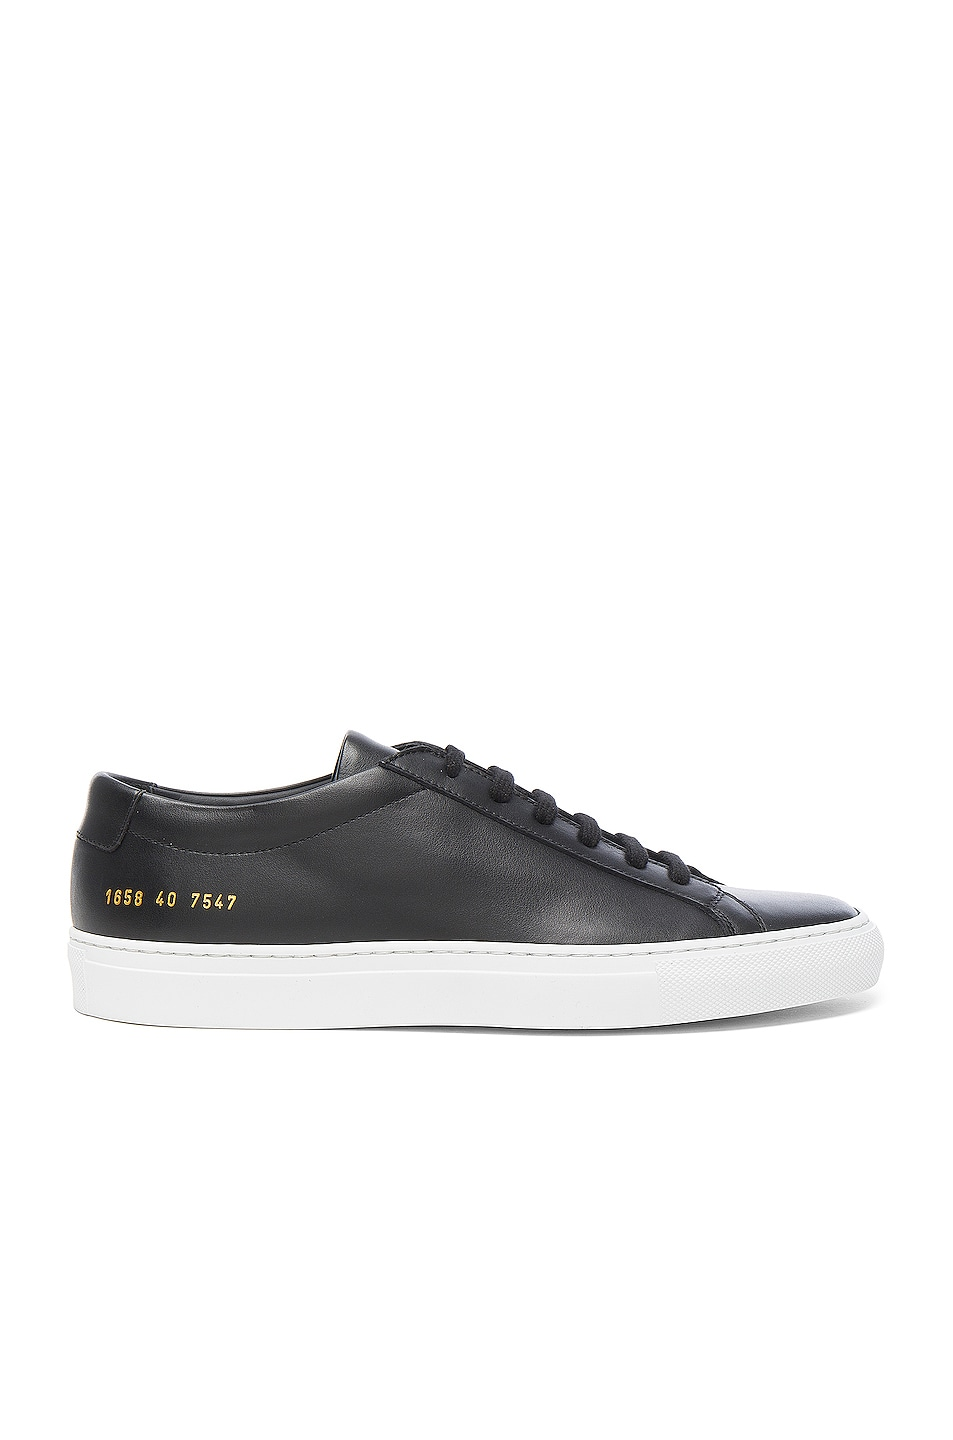 Image 1 of Common Projects Original Leather Achilles Low in Black